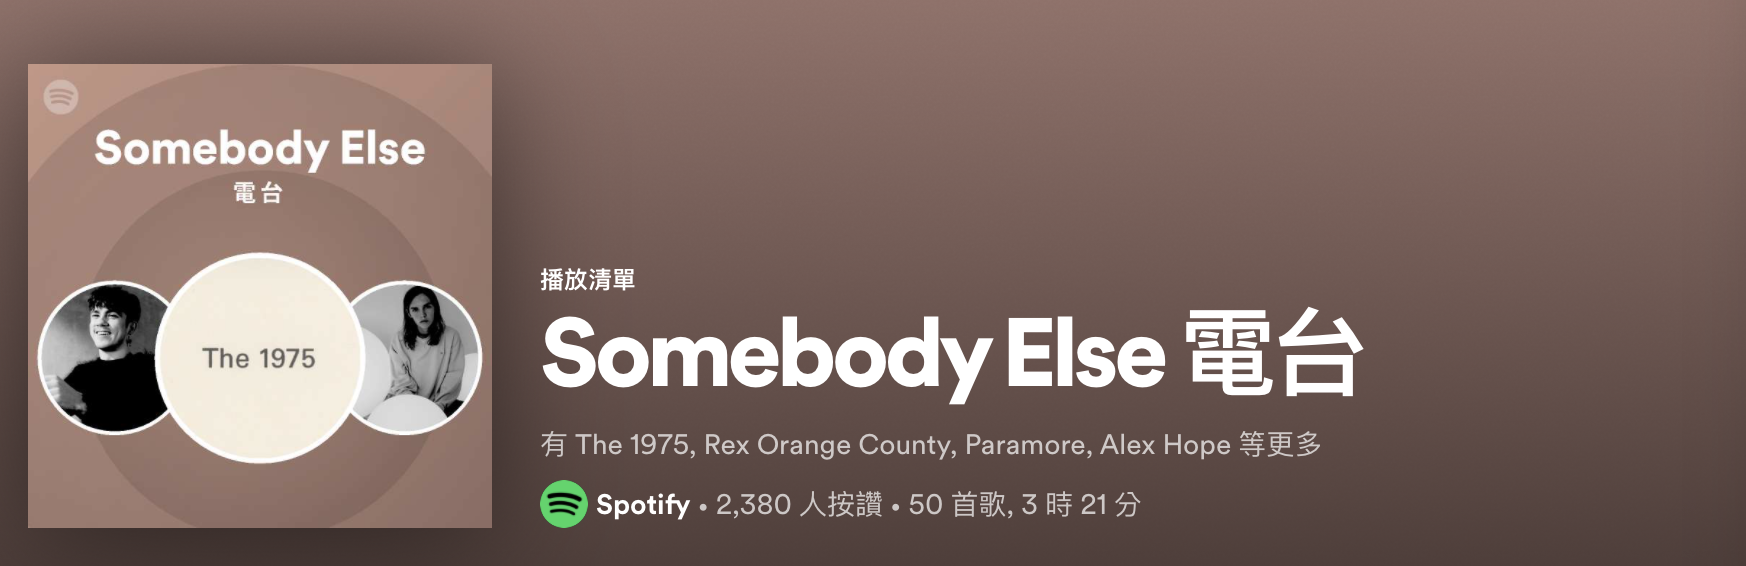 The 1975 somebody else